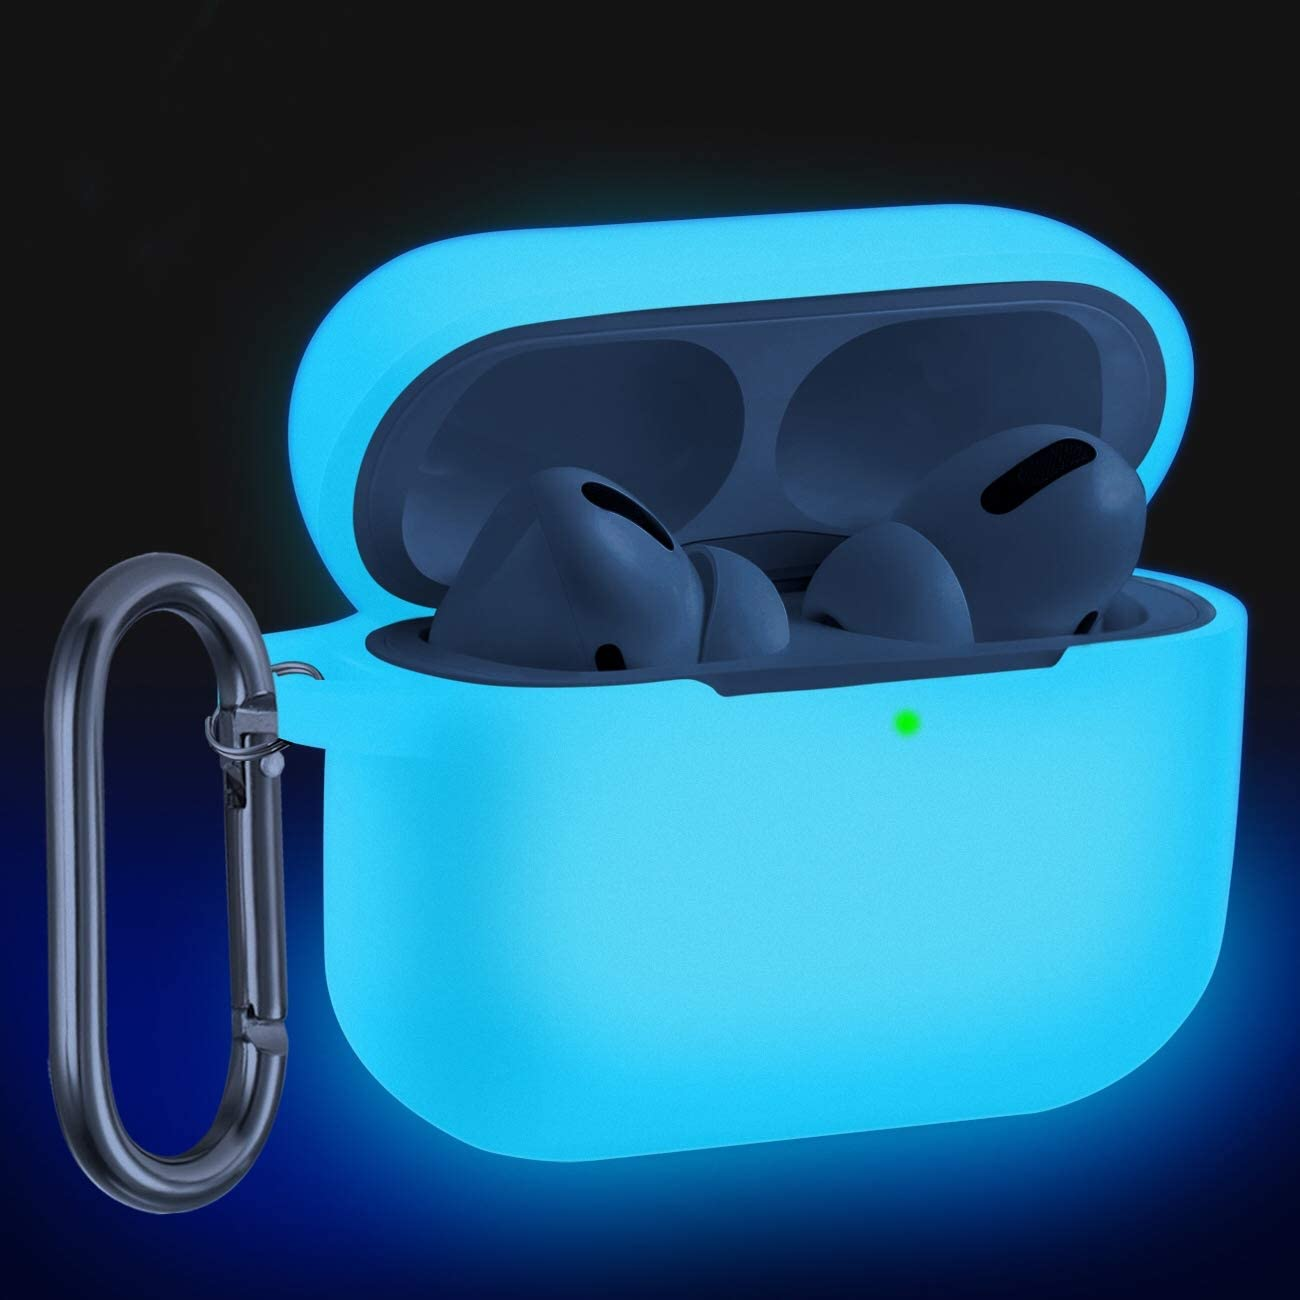 Wepro Compatible with AirPods Pro Case Cover (Front LED Visible) Designed for AirPod Pro Case 2019, Shockproof Silicone Protective Skin with Keychain for Airpods 3, Girls, Boys (Nightglow Blue)